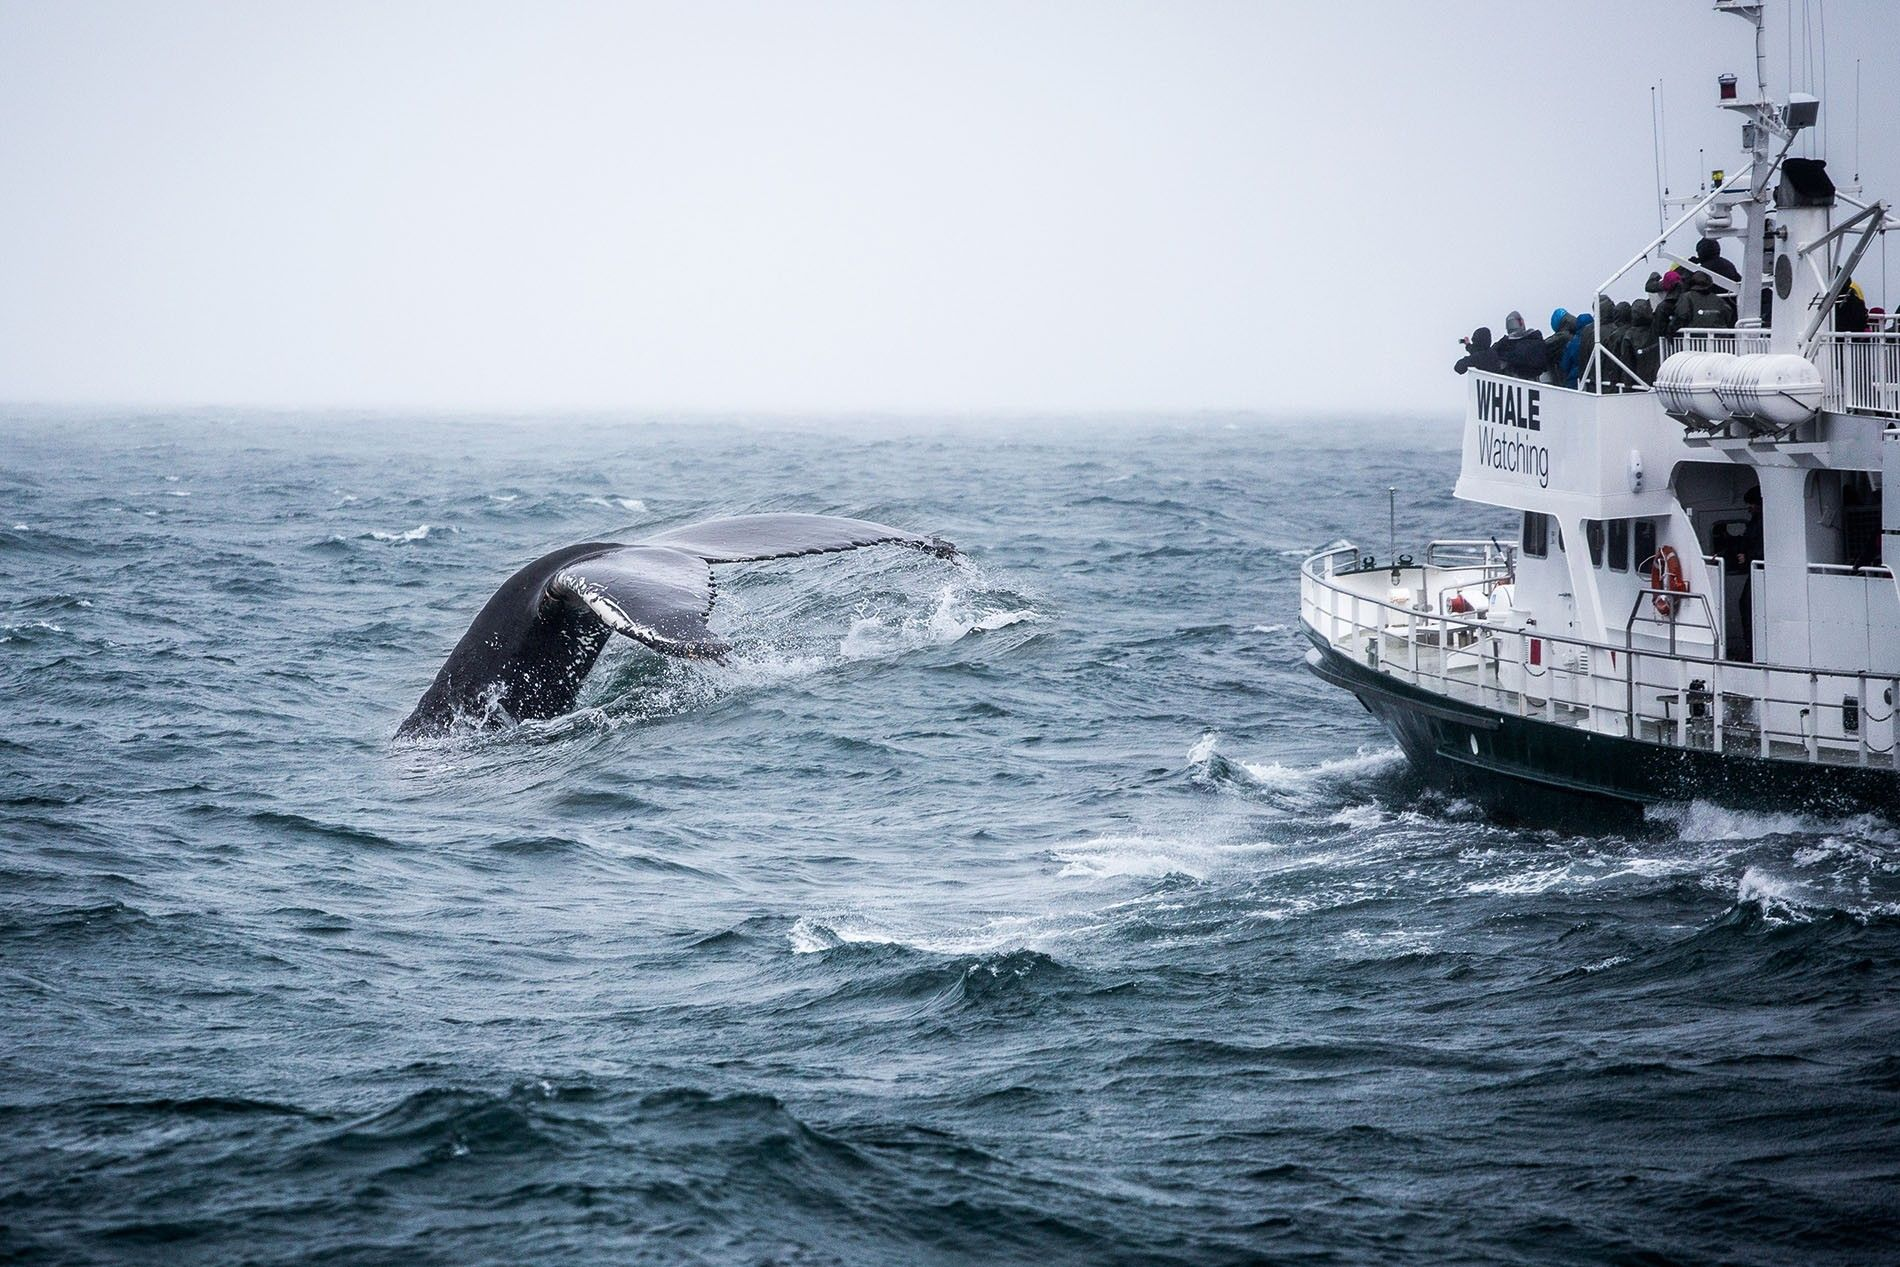 Húsavík is 'the whale-watching capital of Europe'. Eleven species visit the area to feed, including the ...